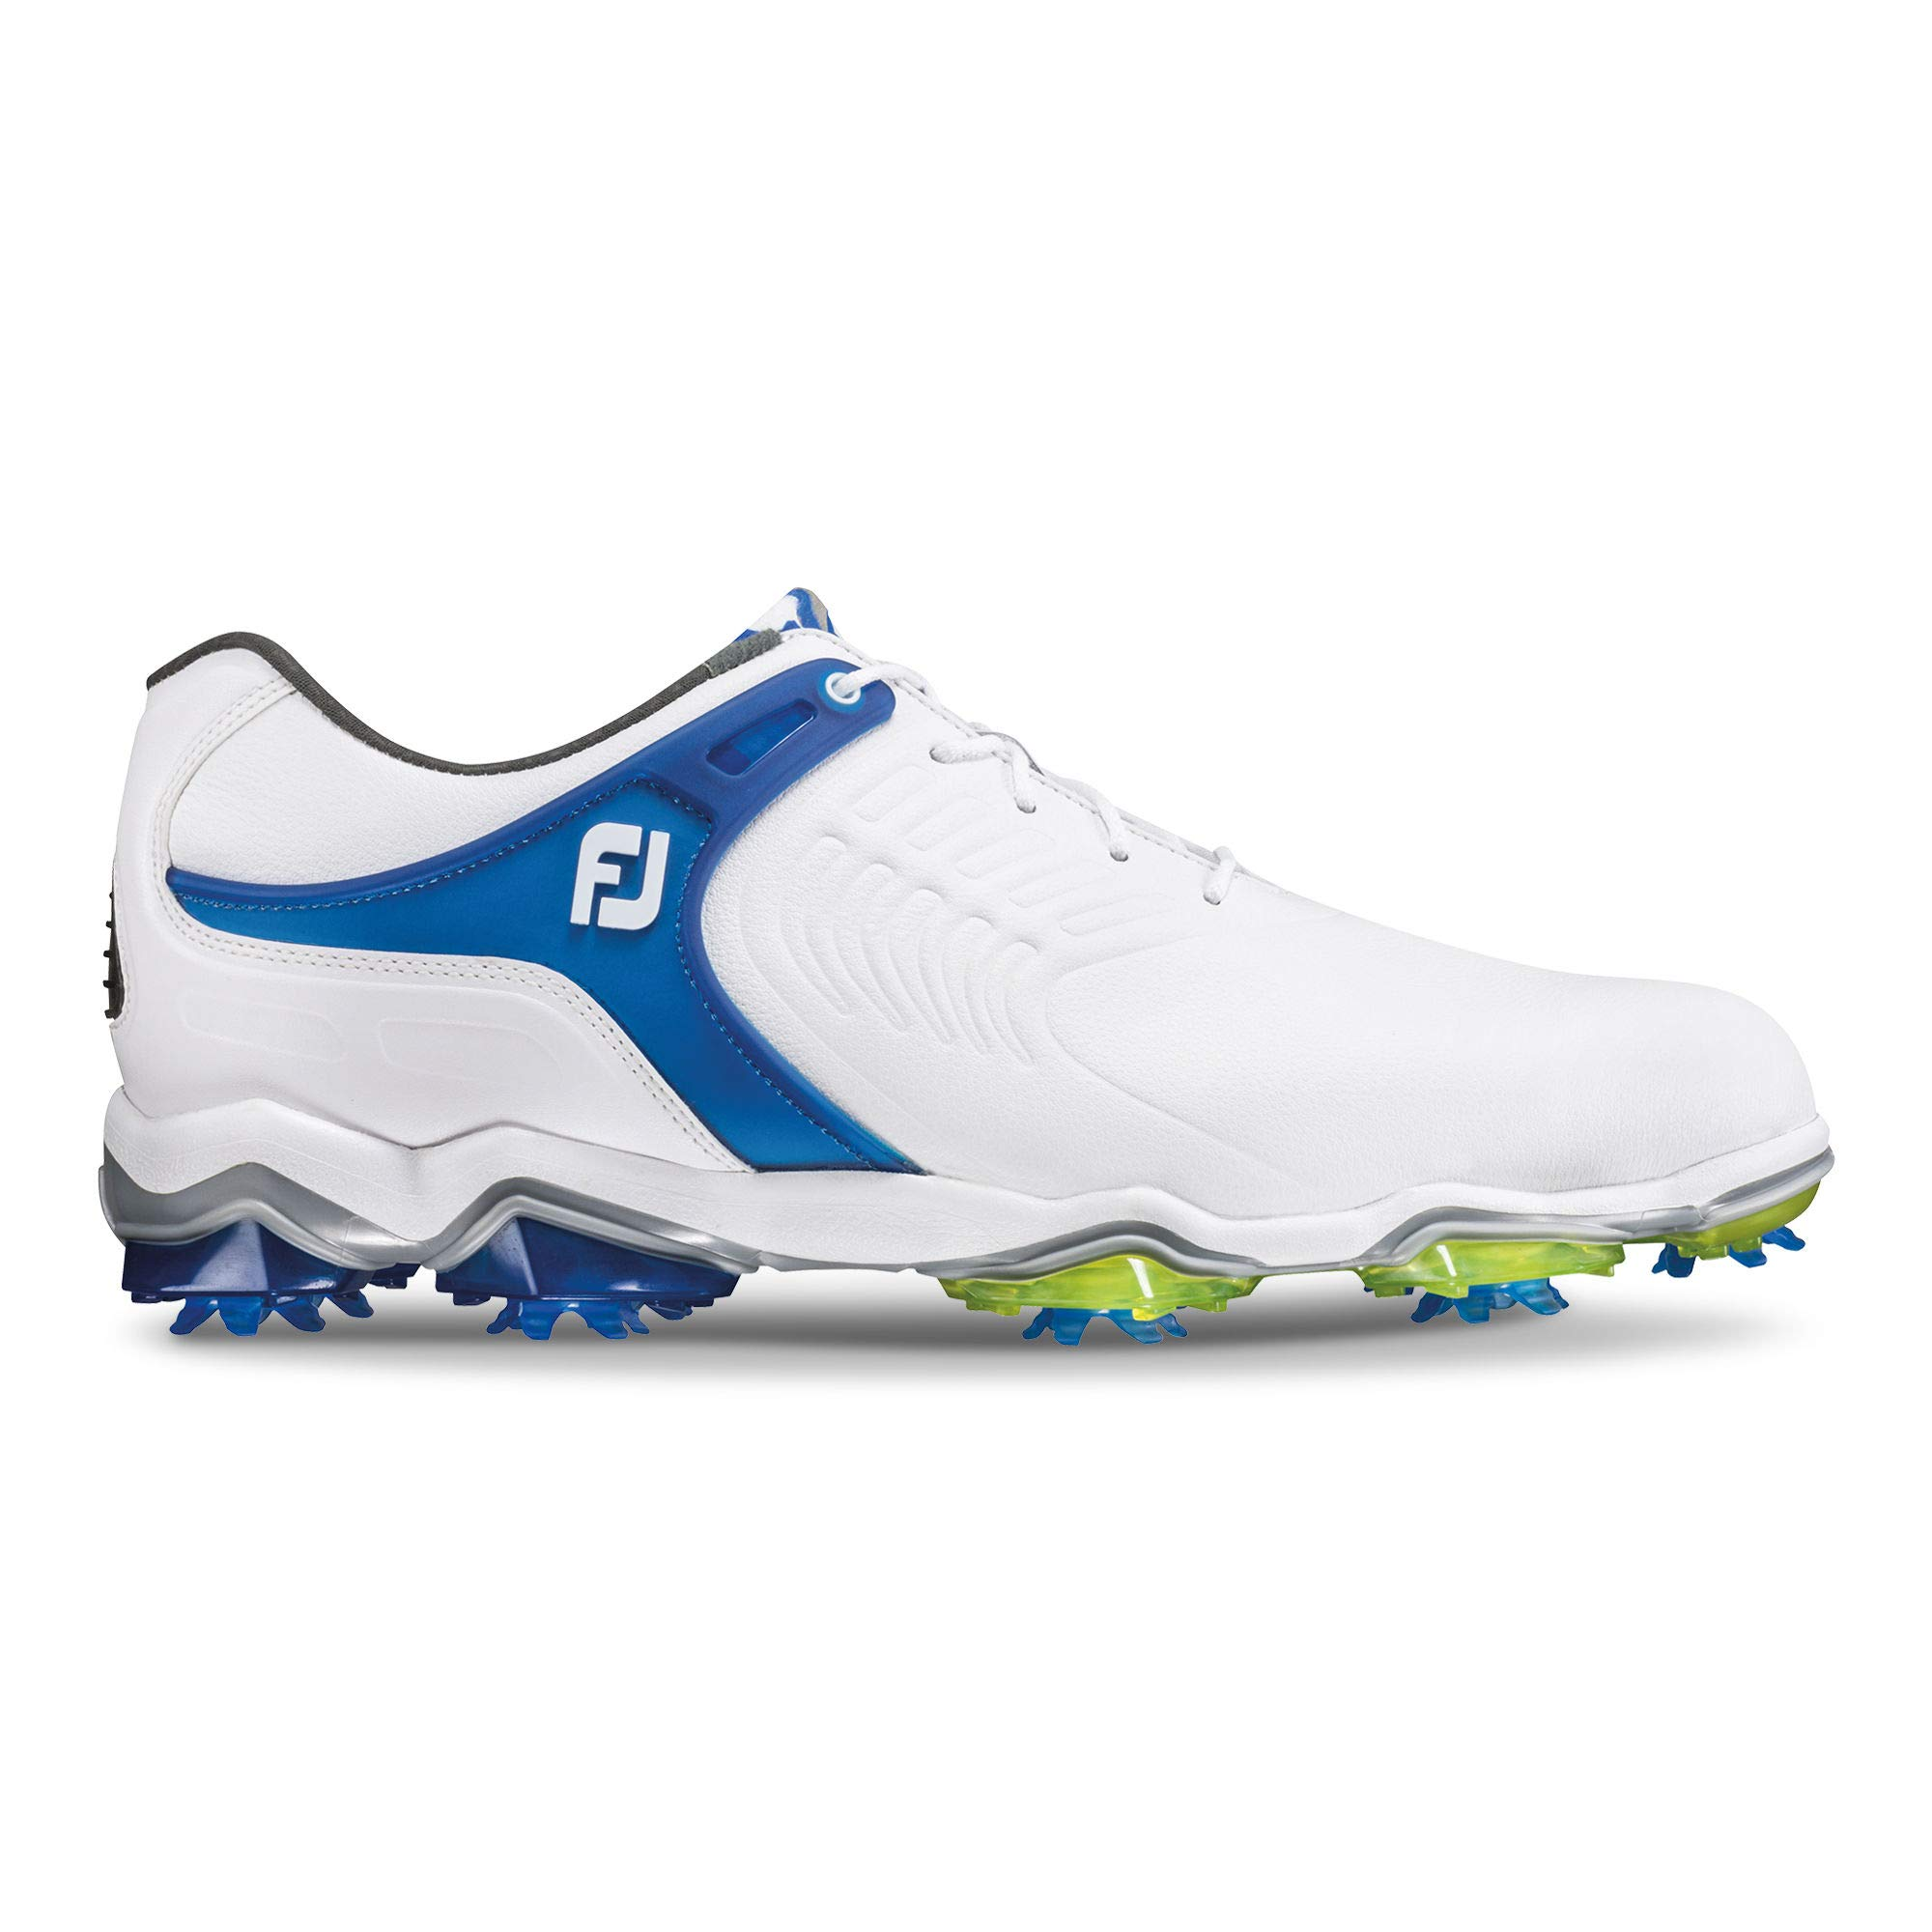 FootJoy Men's Tour-S Golf Shoes White 10.5 M Blue, US by FootJoy